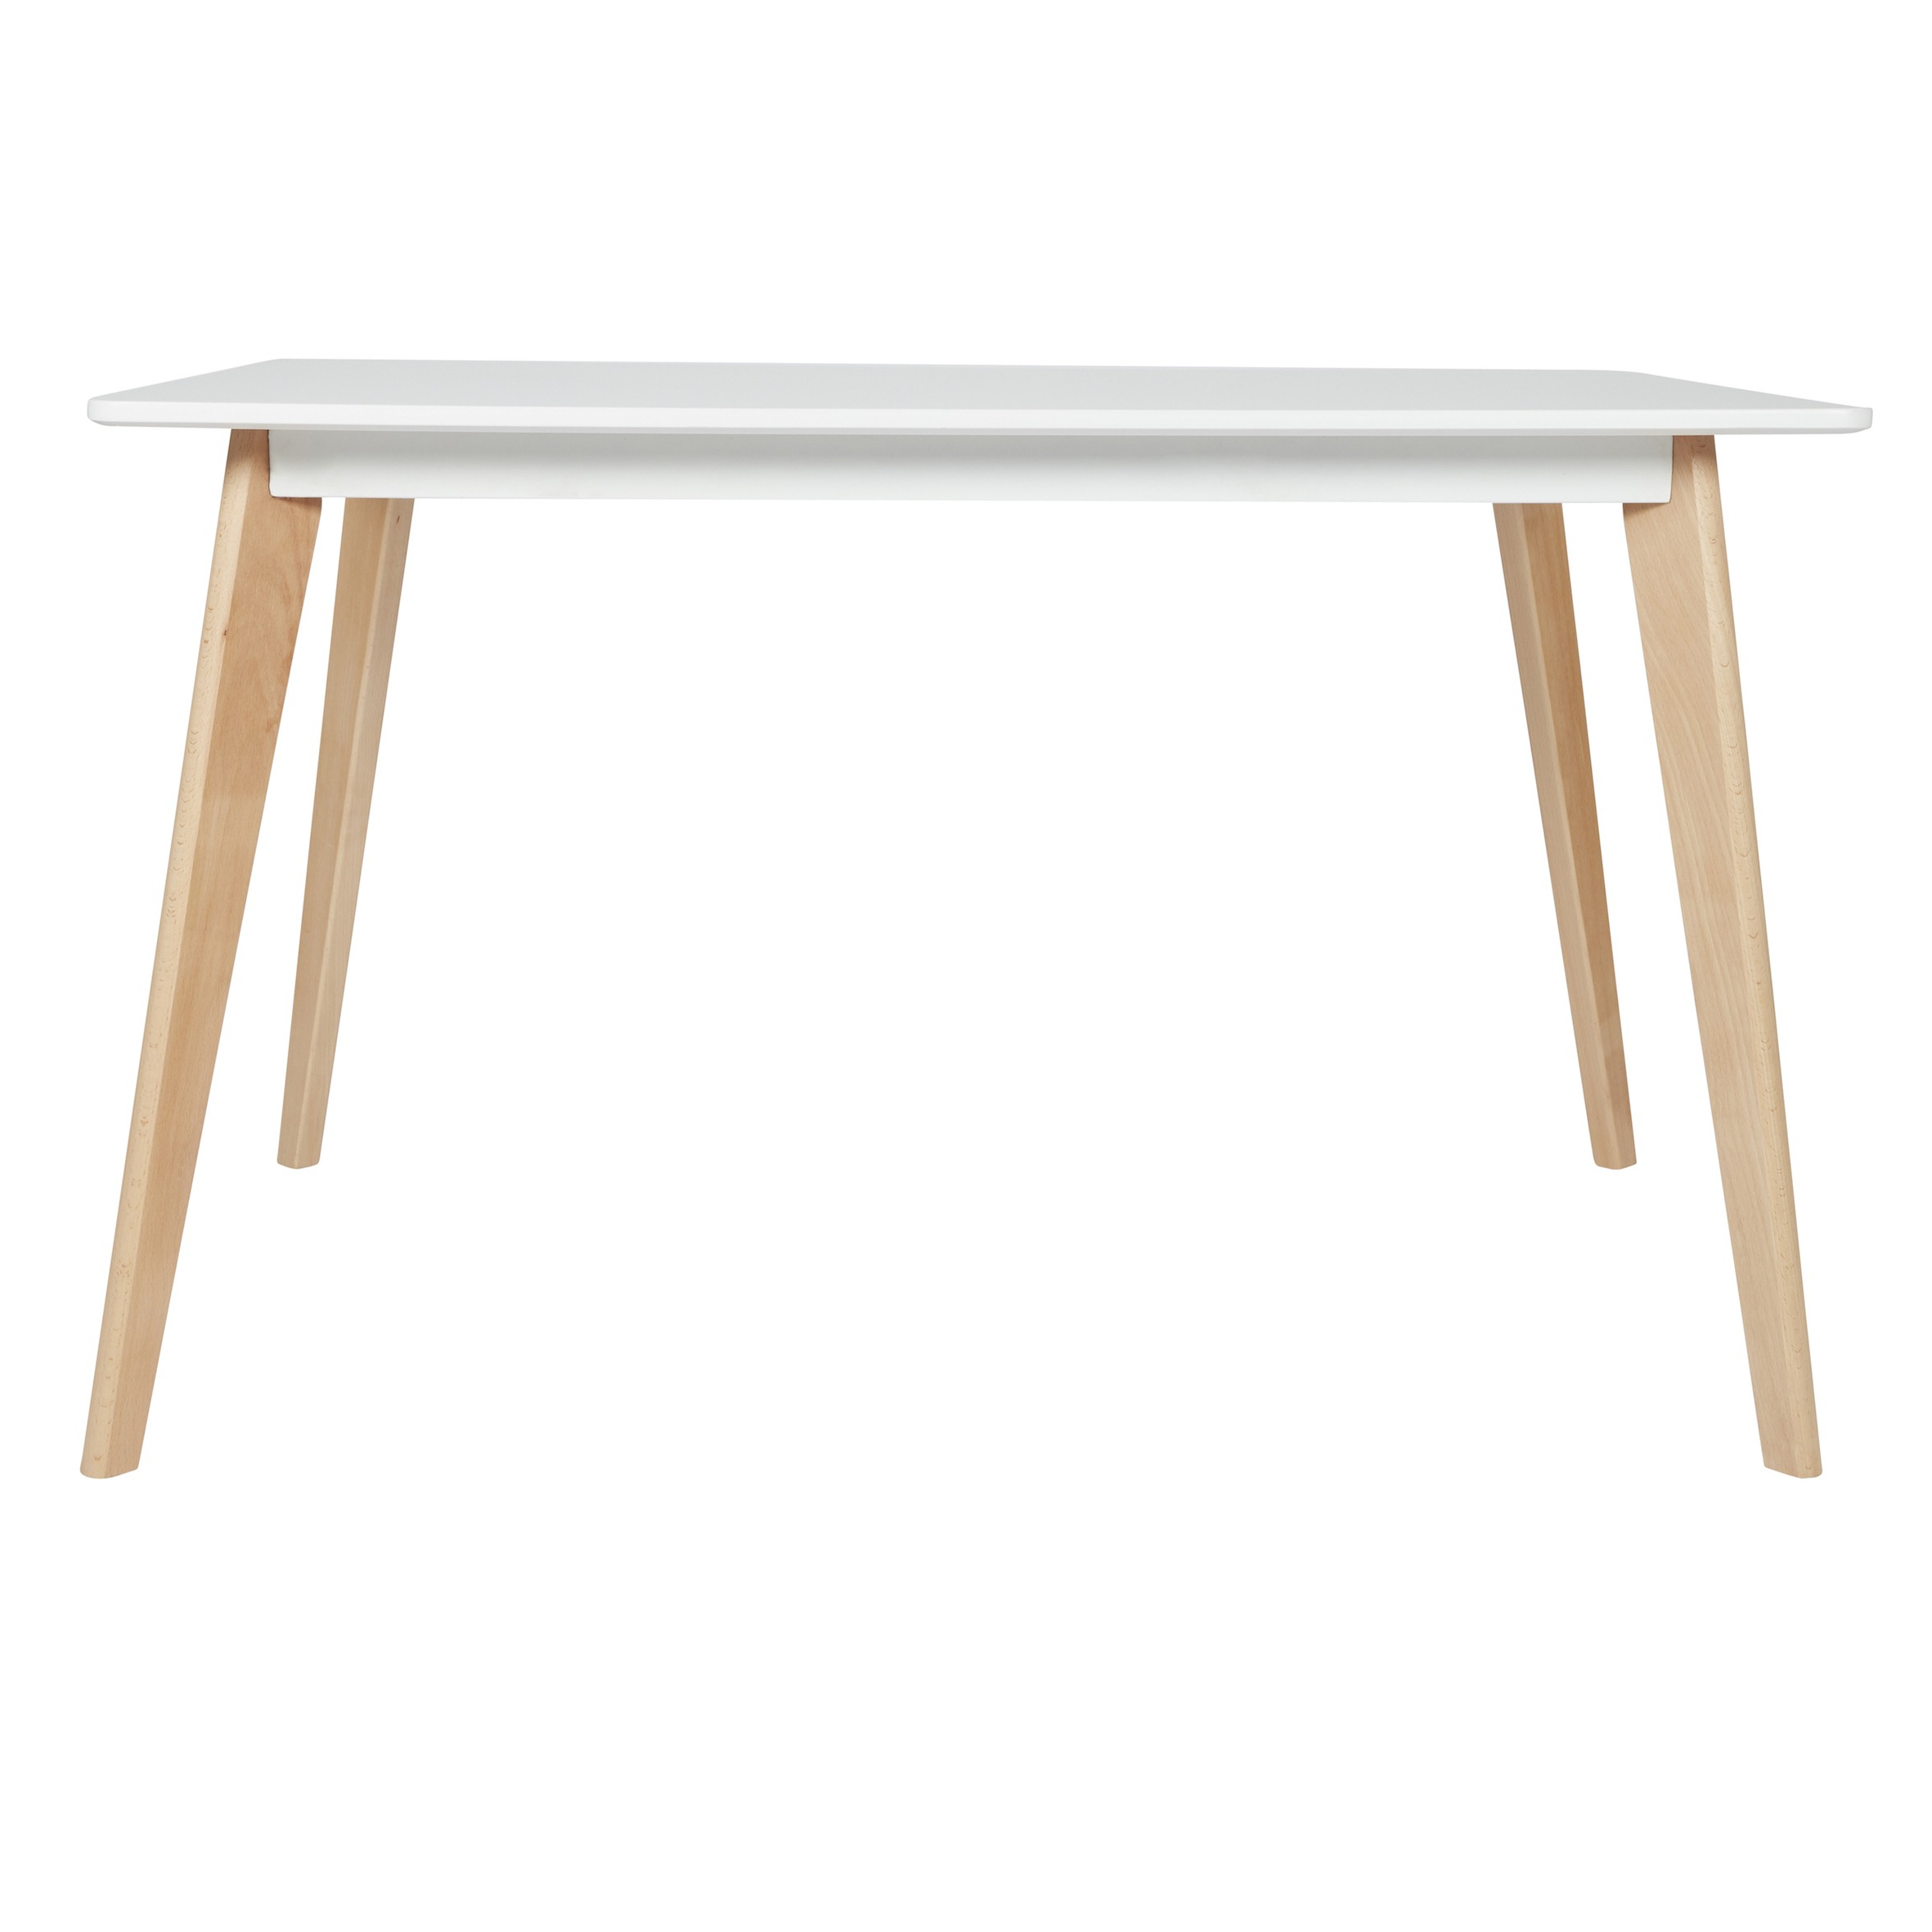 Eames Style Dining Tables With Wooden Legs Within Popular Dining Table With Natural Beech Wood Legs (White (View 16 of 16)